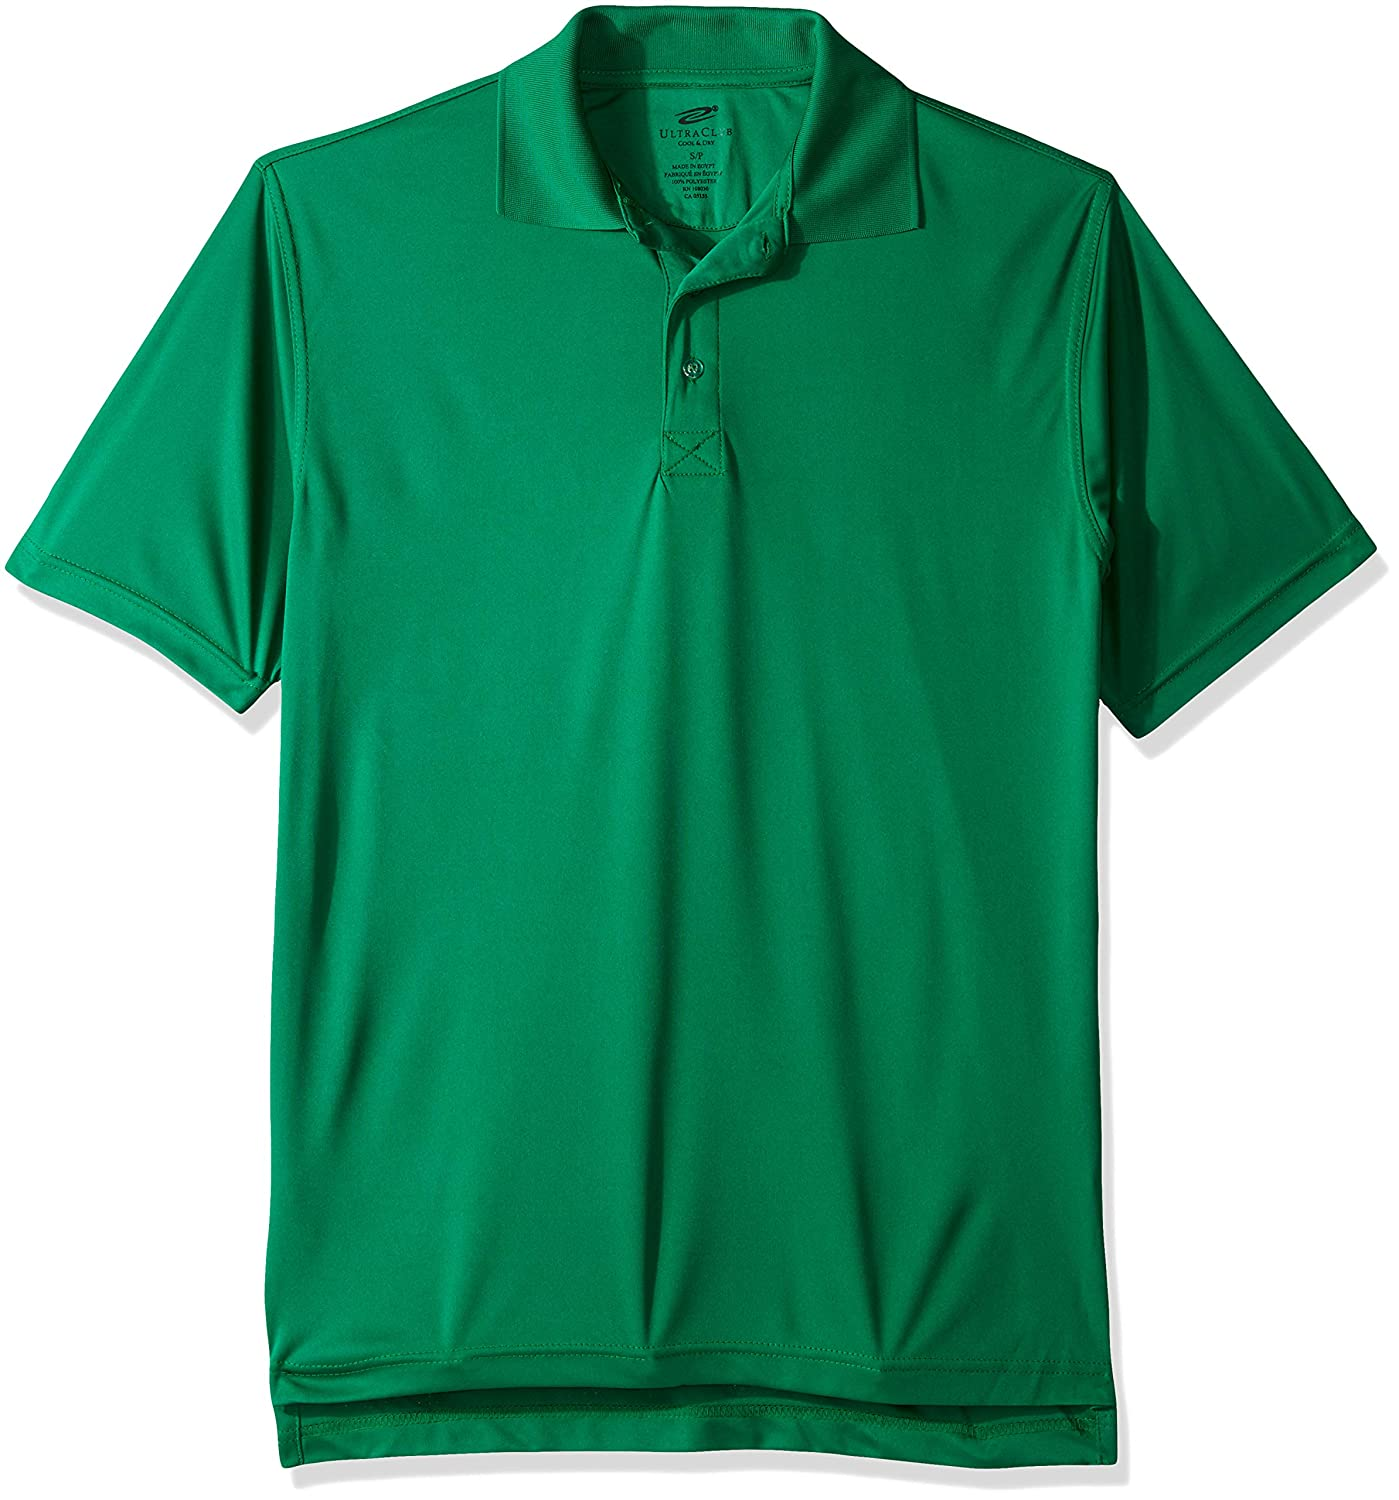 Clementine Mens Ultc-8425-cool /& Dry Sport Performance Interlock Polo